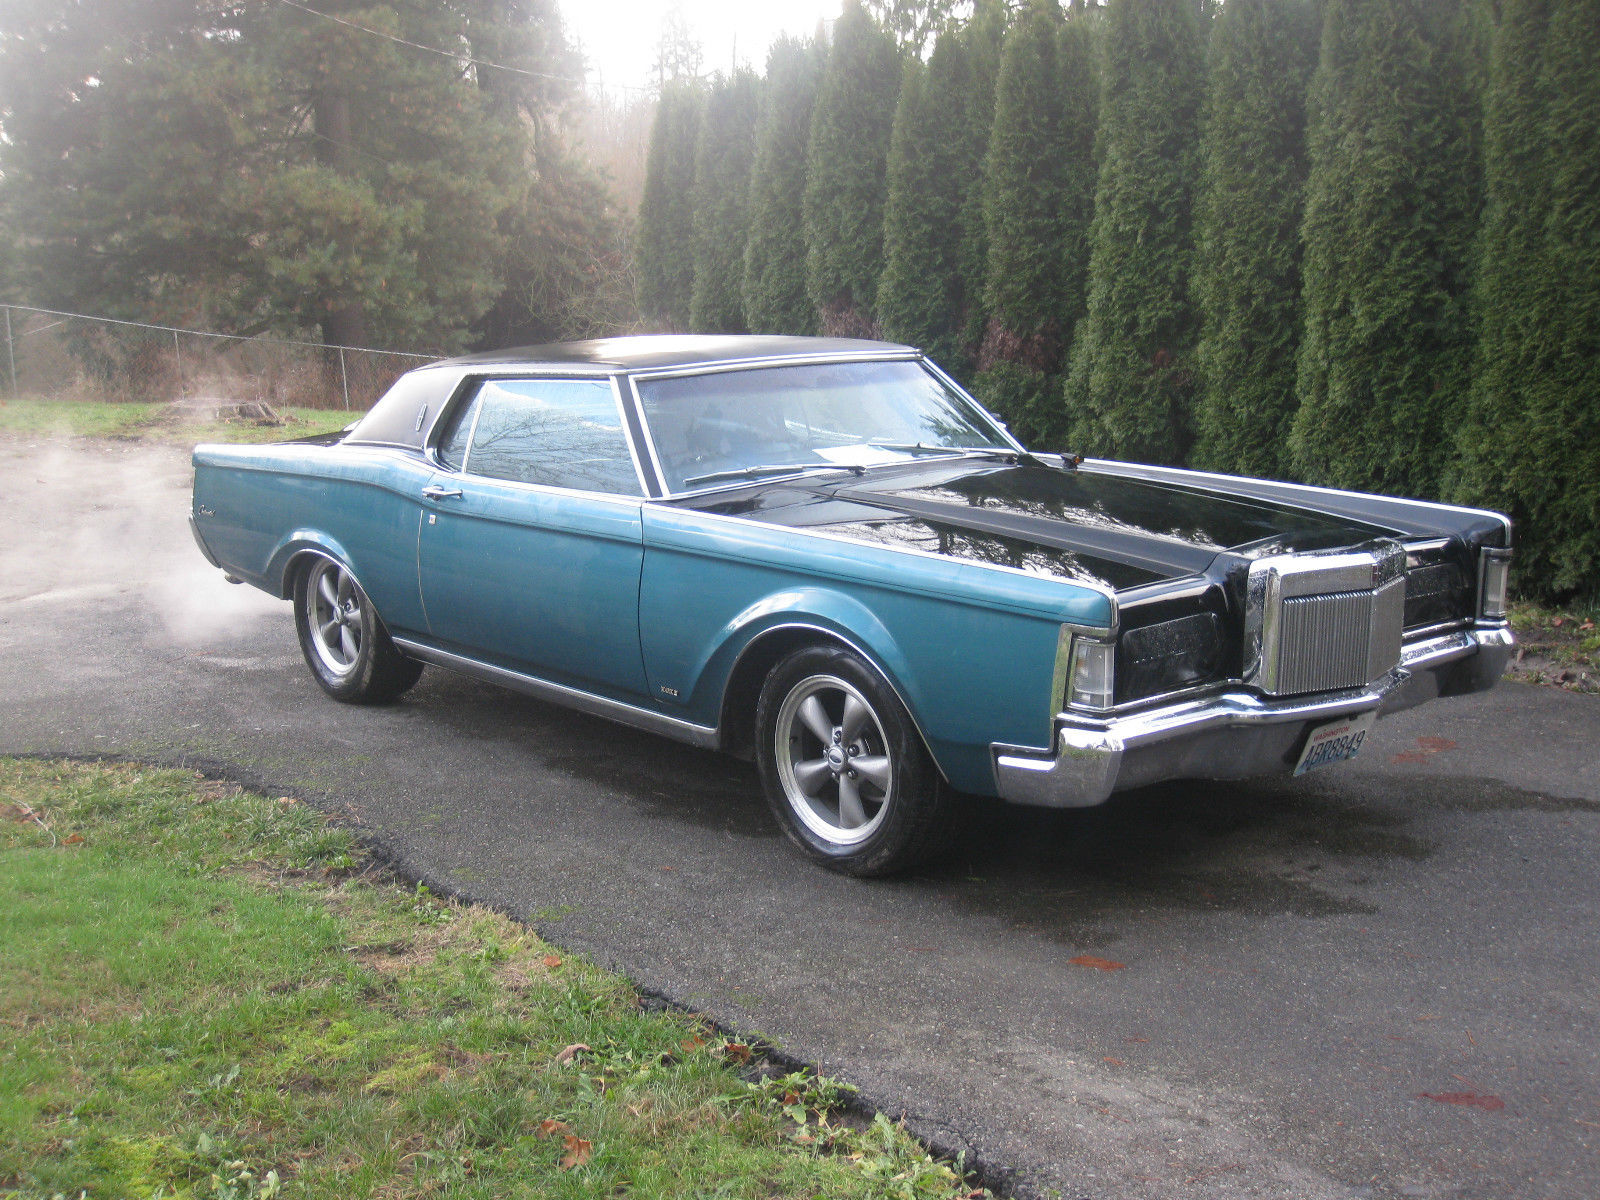 69 Lincoln Continental Mark Iii Rebuilt Motor And Trans